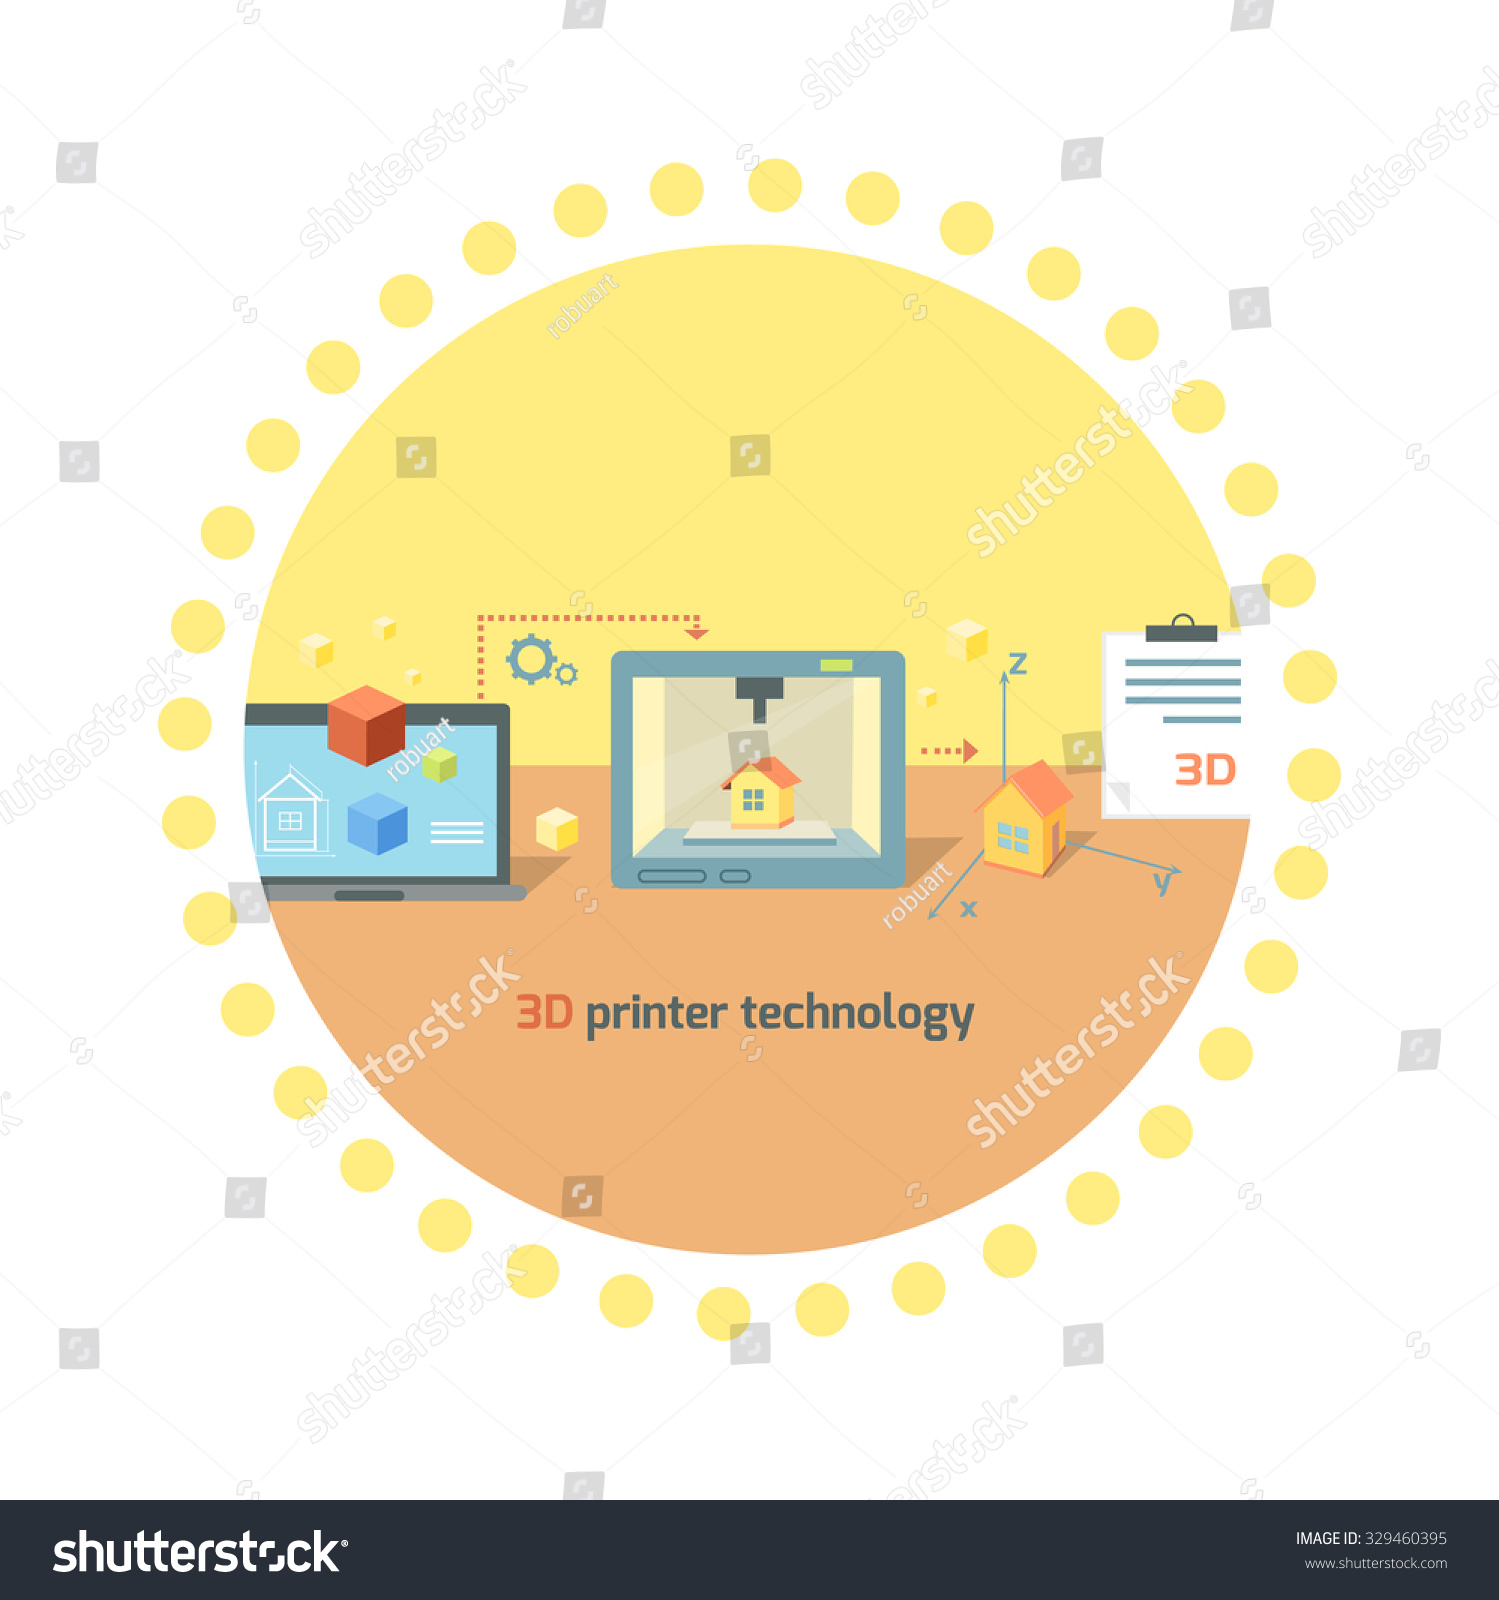 3d printer technology icon flat design stock vector for Innovation in product and industrial design